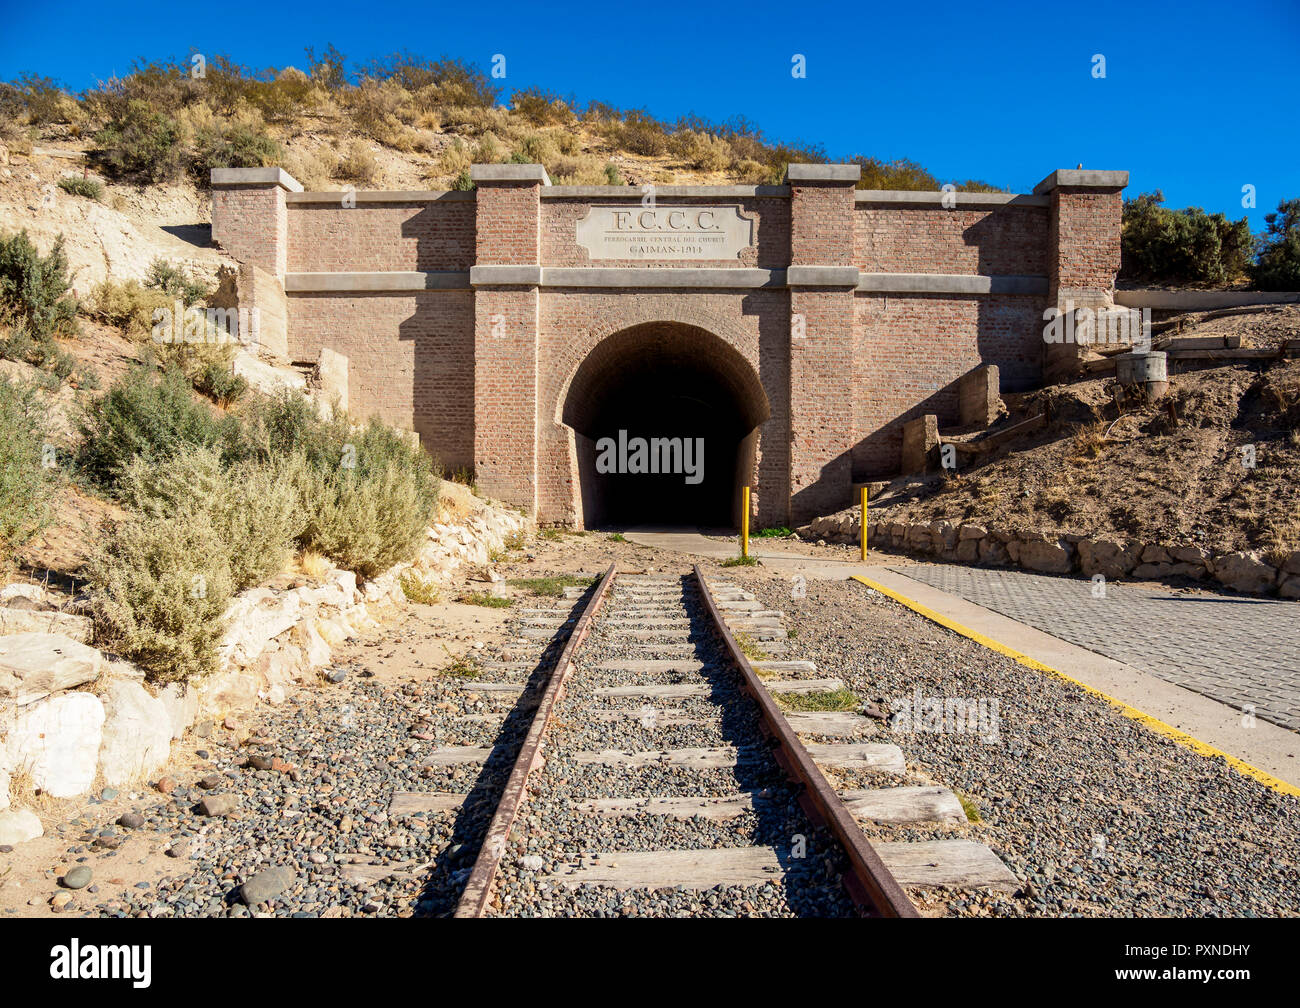 Central Chubut Railway Tunnel, Gaiman, The Welsh Settlement, Chubut Province, Patagonia, Argentina - Stock Image